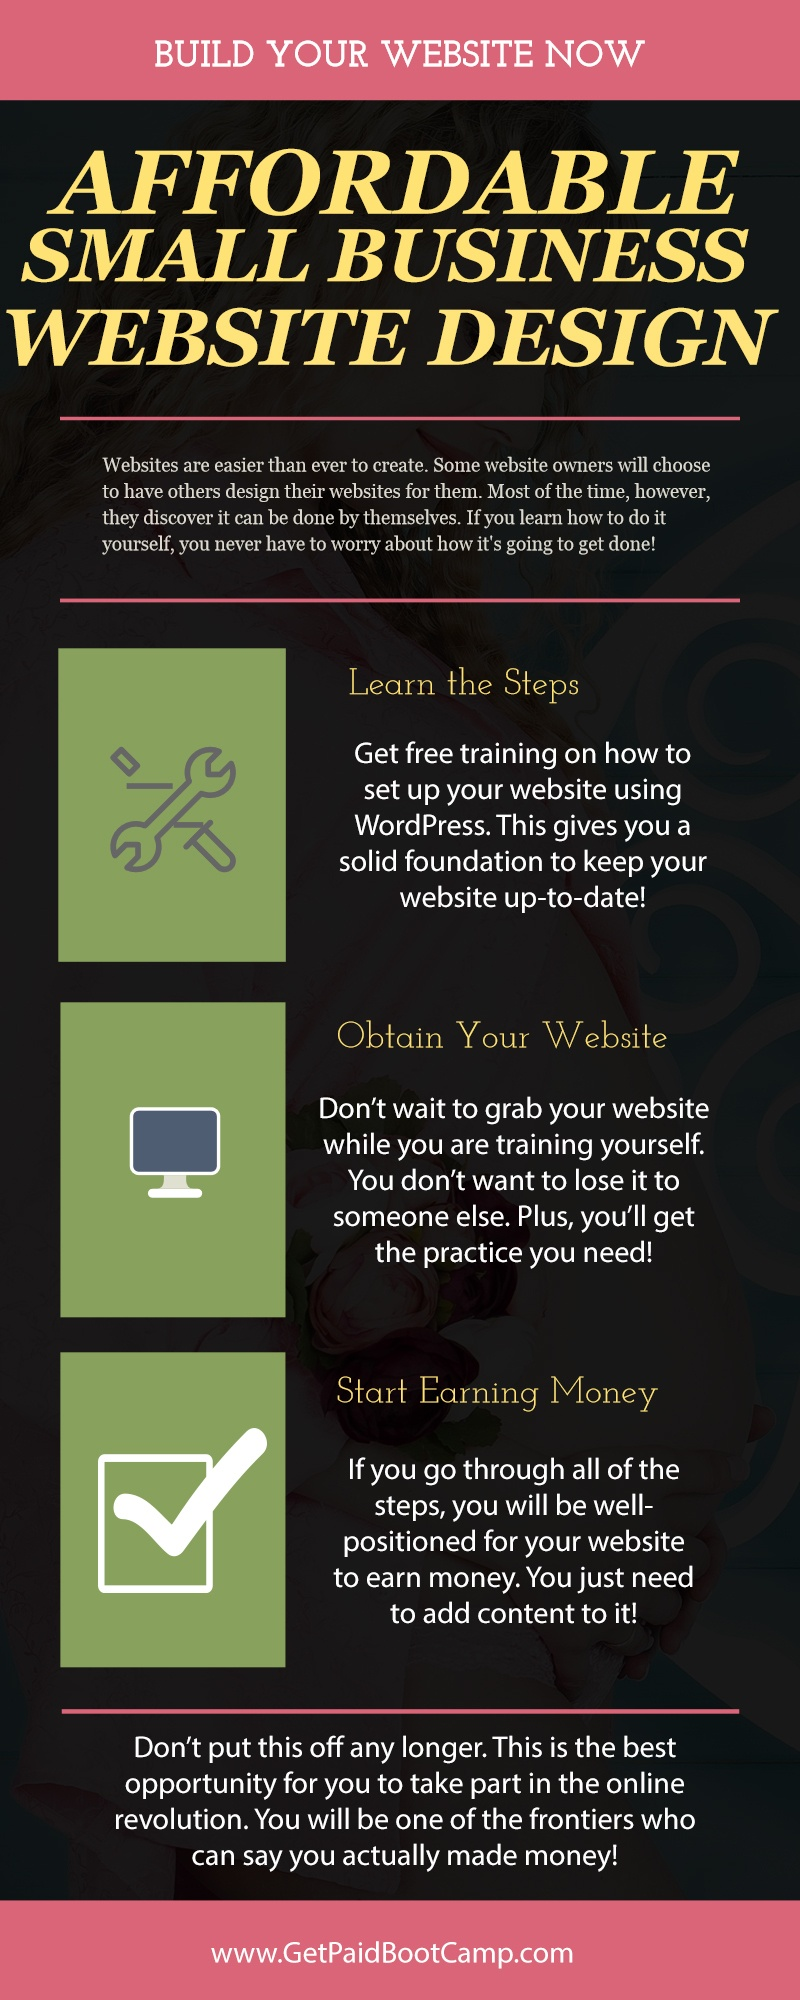 Need affordable small business website design get paid boot camp embed this infographic copy it solutioingenieria Image collections